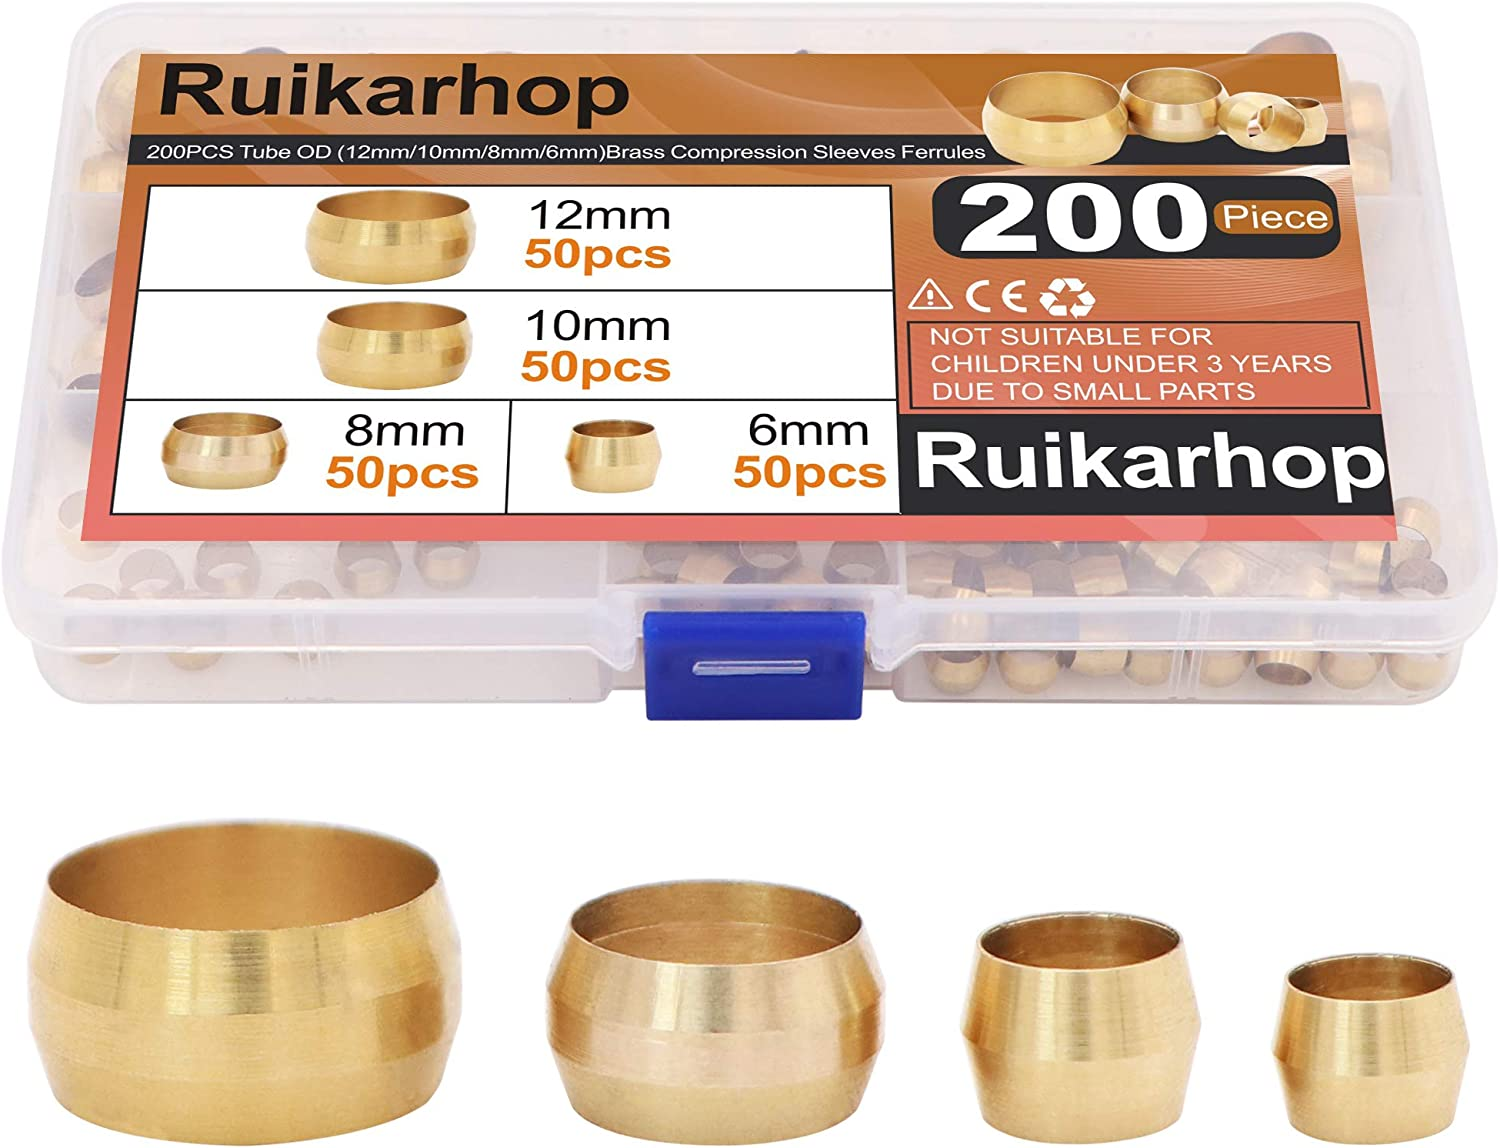 Popular brand in the world OFFicial store Ruikarhop 200PCS Tube OD(6mm 8mm Compressi 12mm Brass 10mm